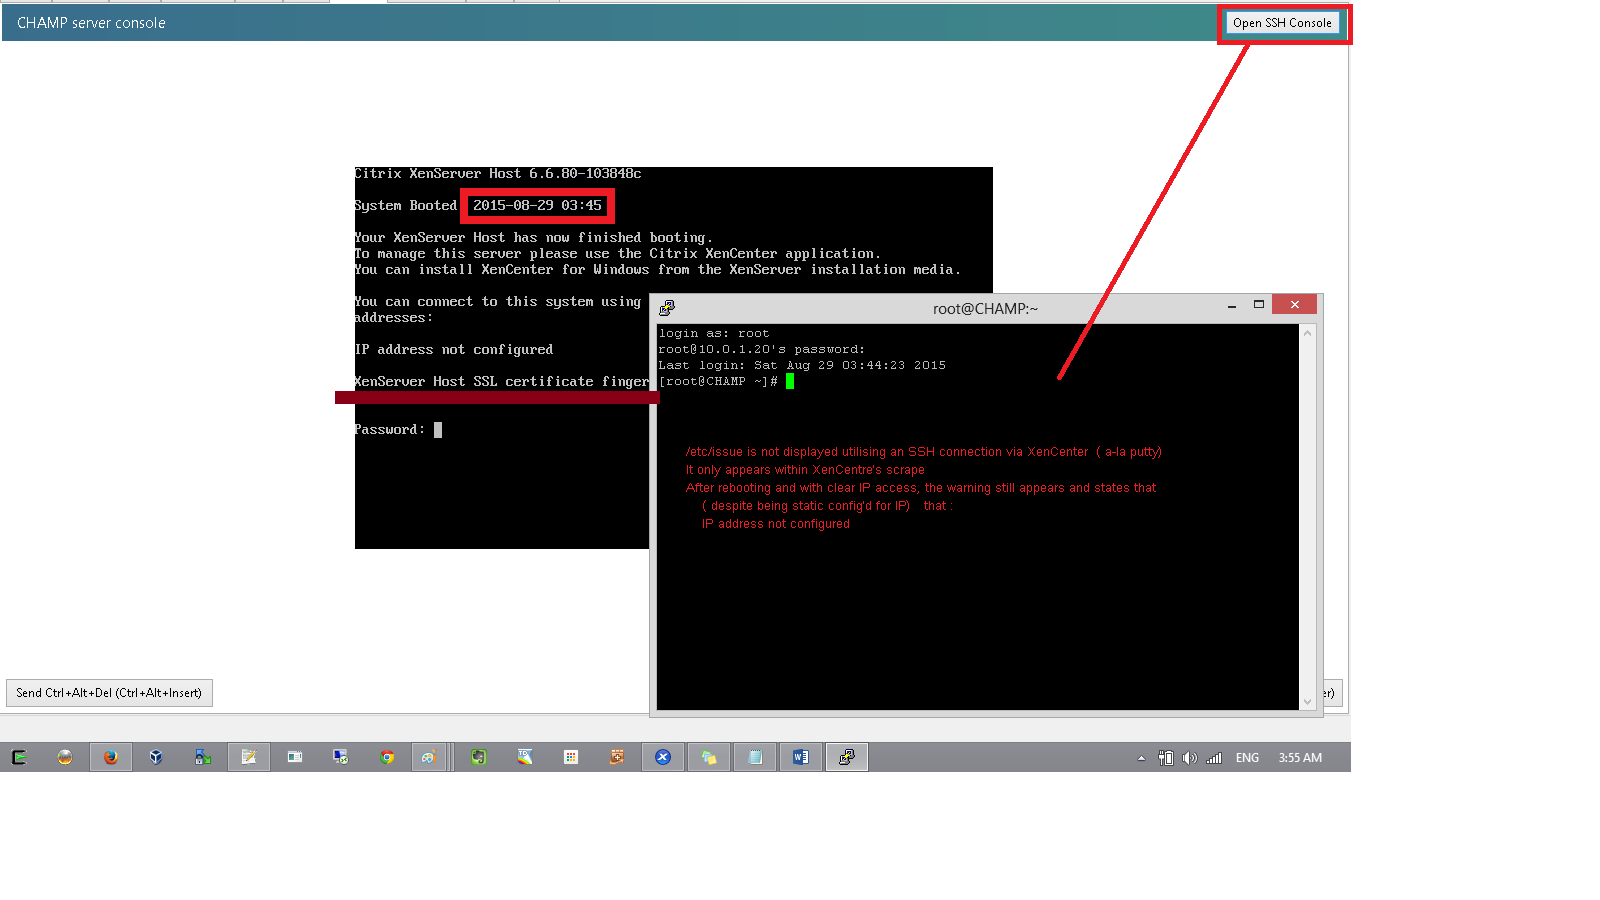 XSO-342] IP address not configured - bugs xenserver org